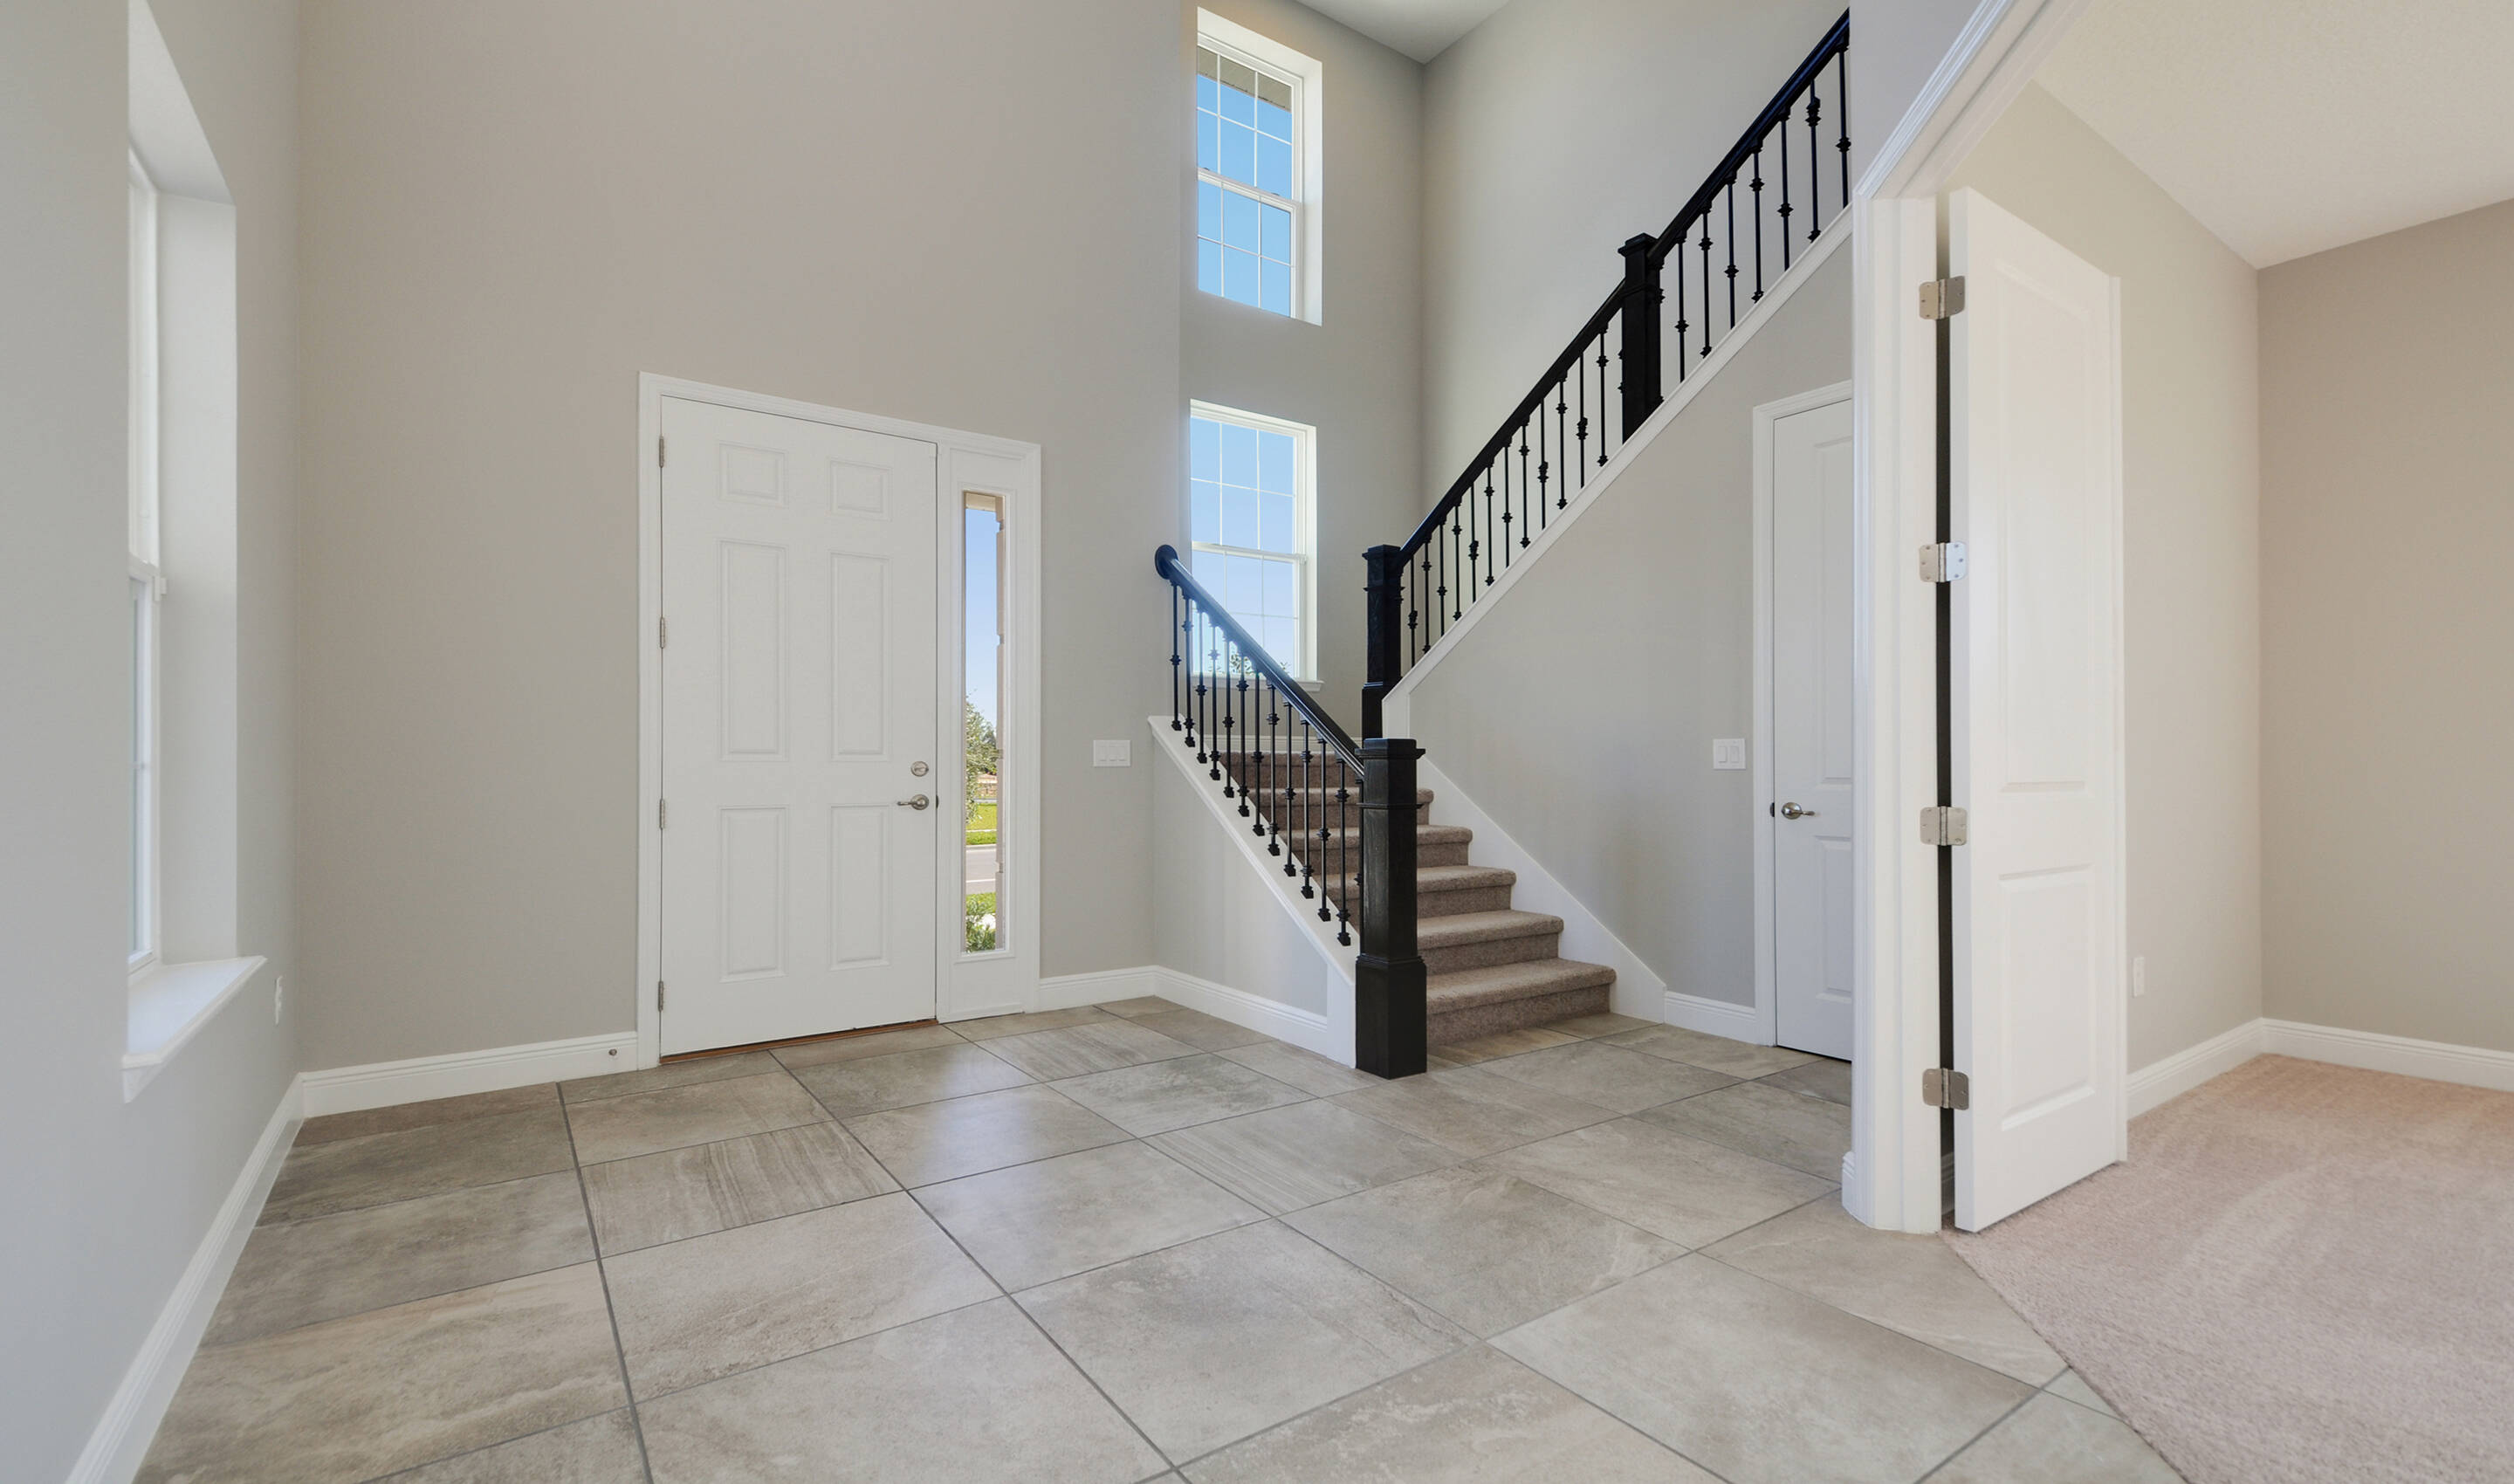 highlands at summerlake groves marisol staircase quick move in winter garden florida